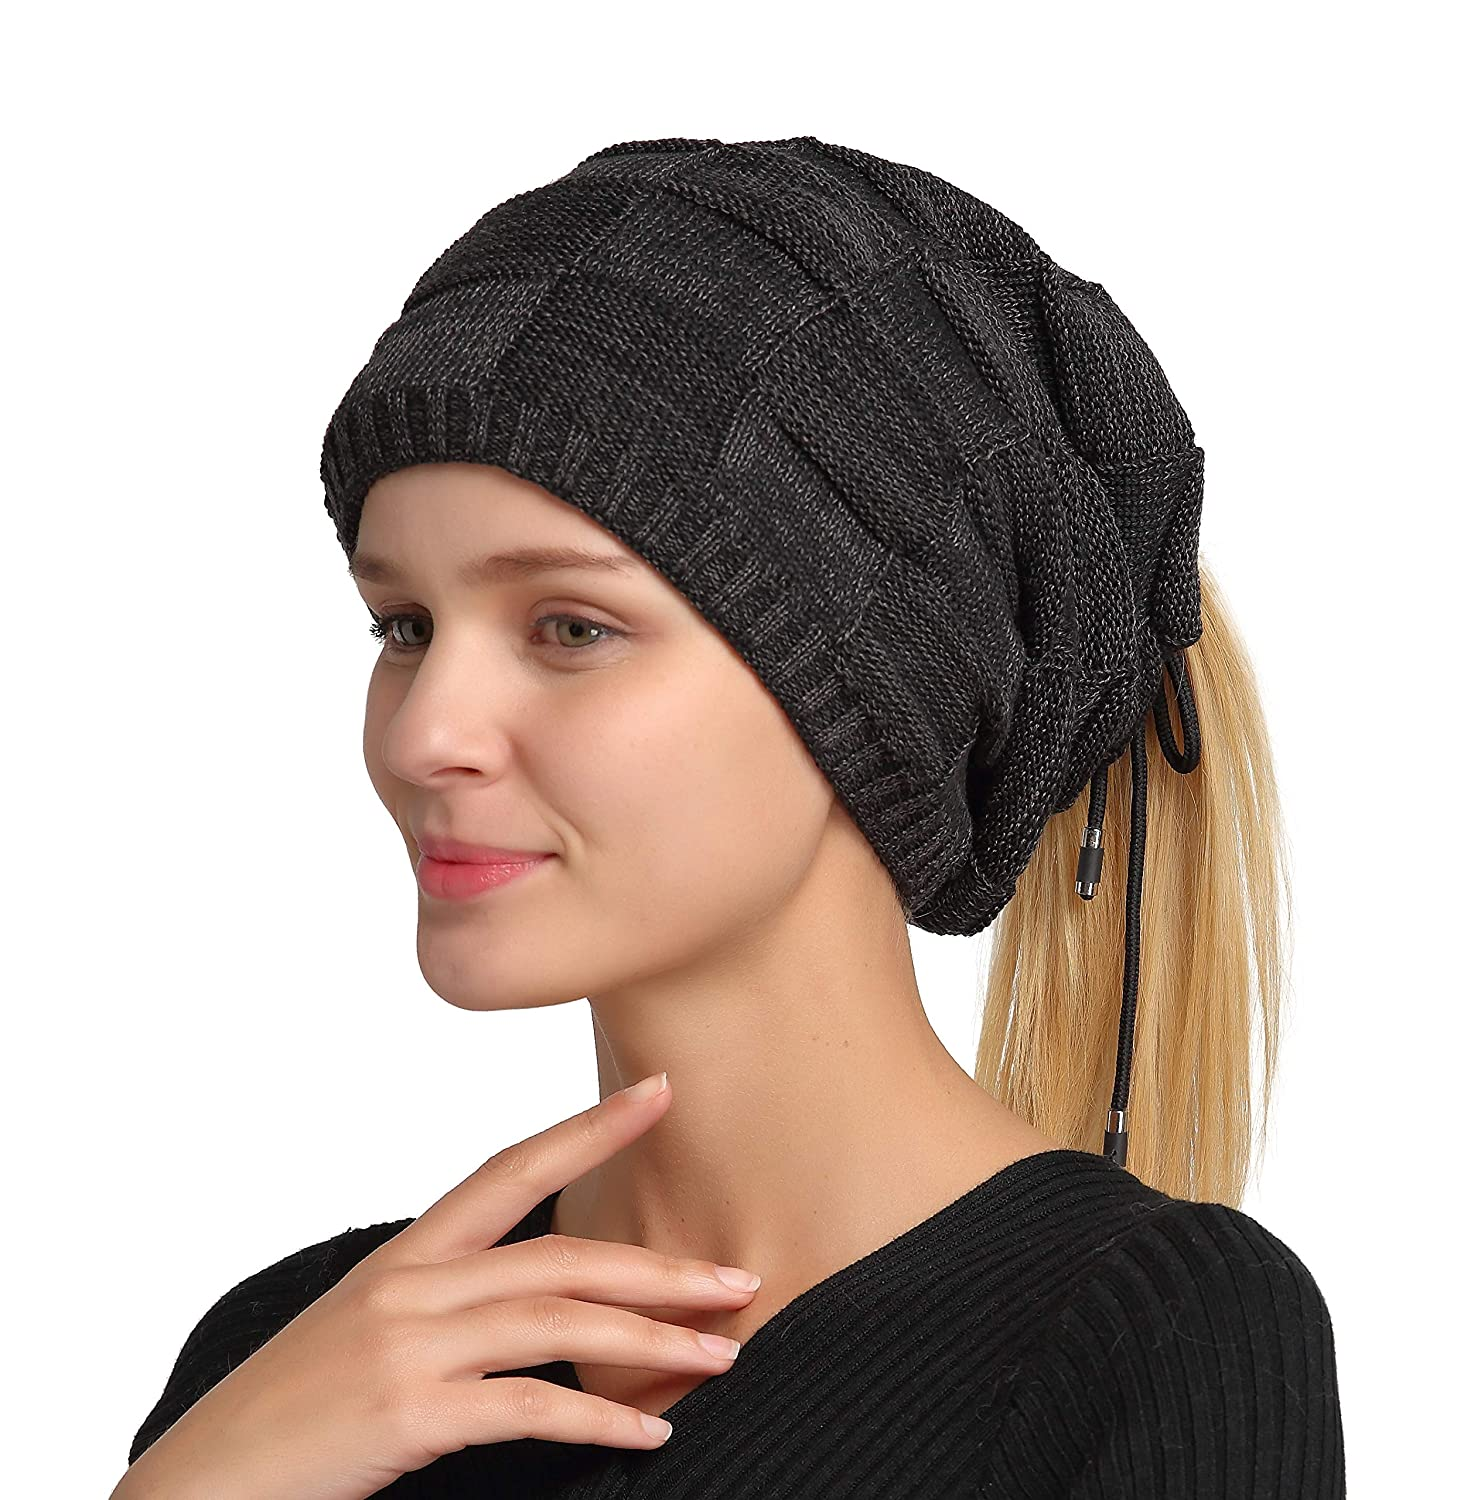 Jeasona Womens Multifunctional Winter Ponytail Beanie Slouchy Hat Scarf Neck Warmer Gift Black